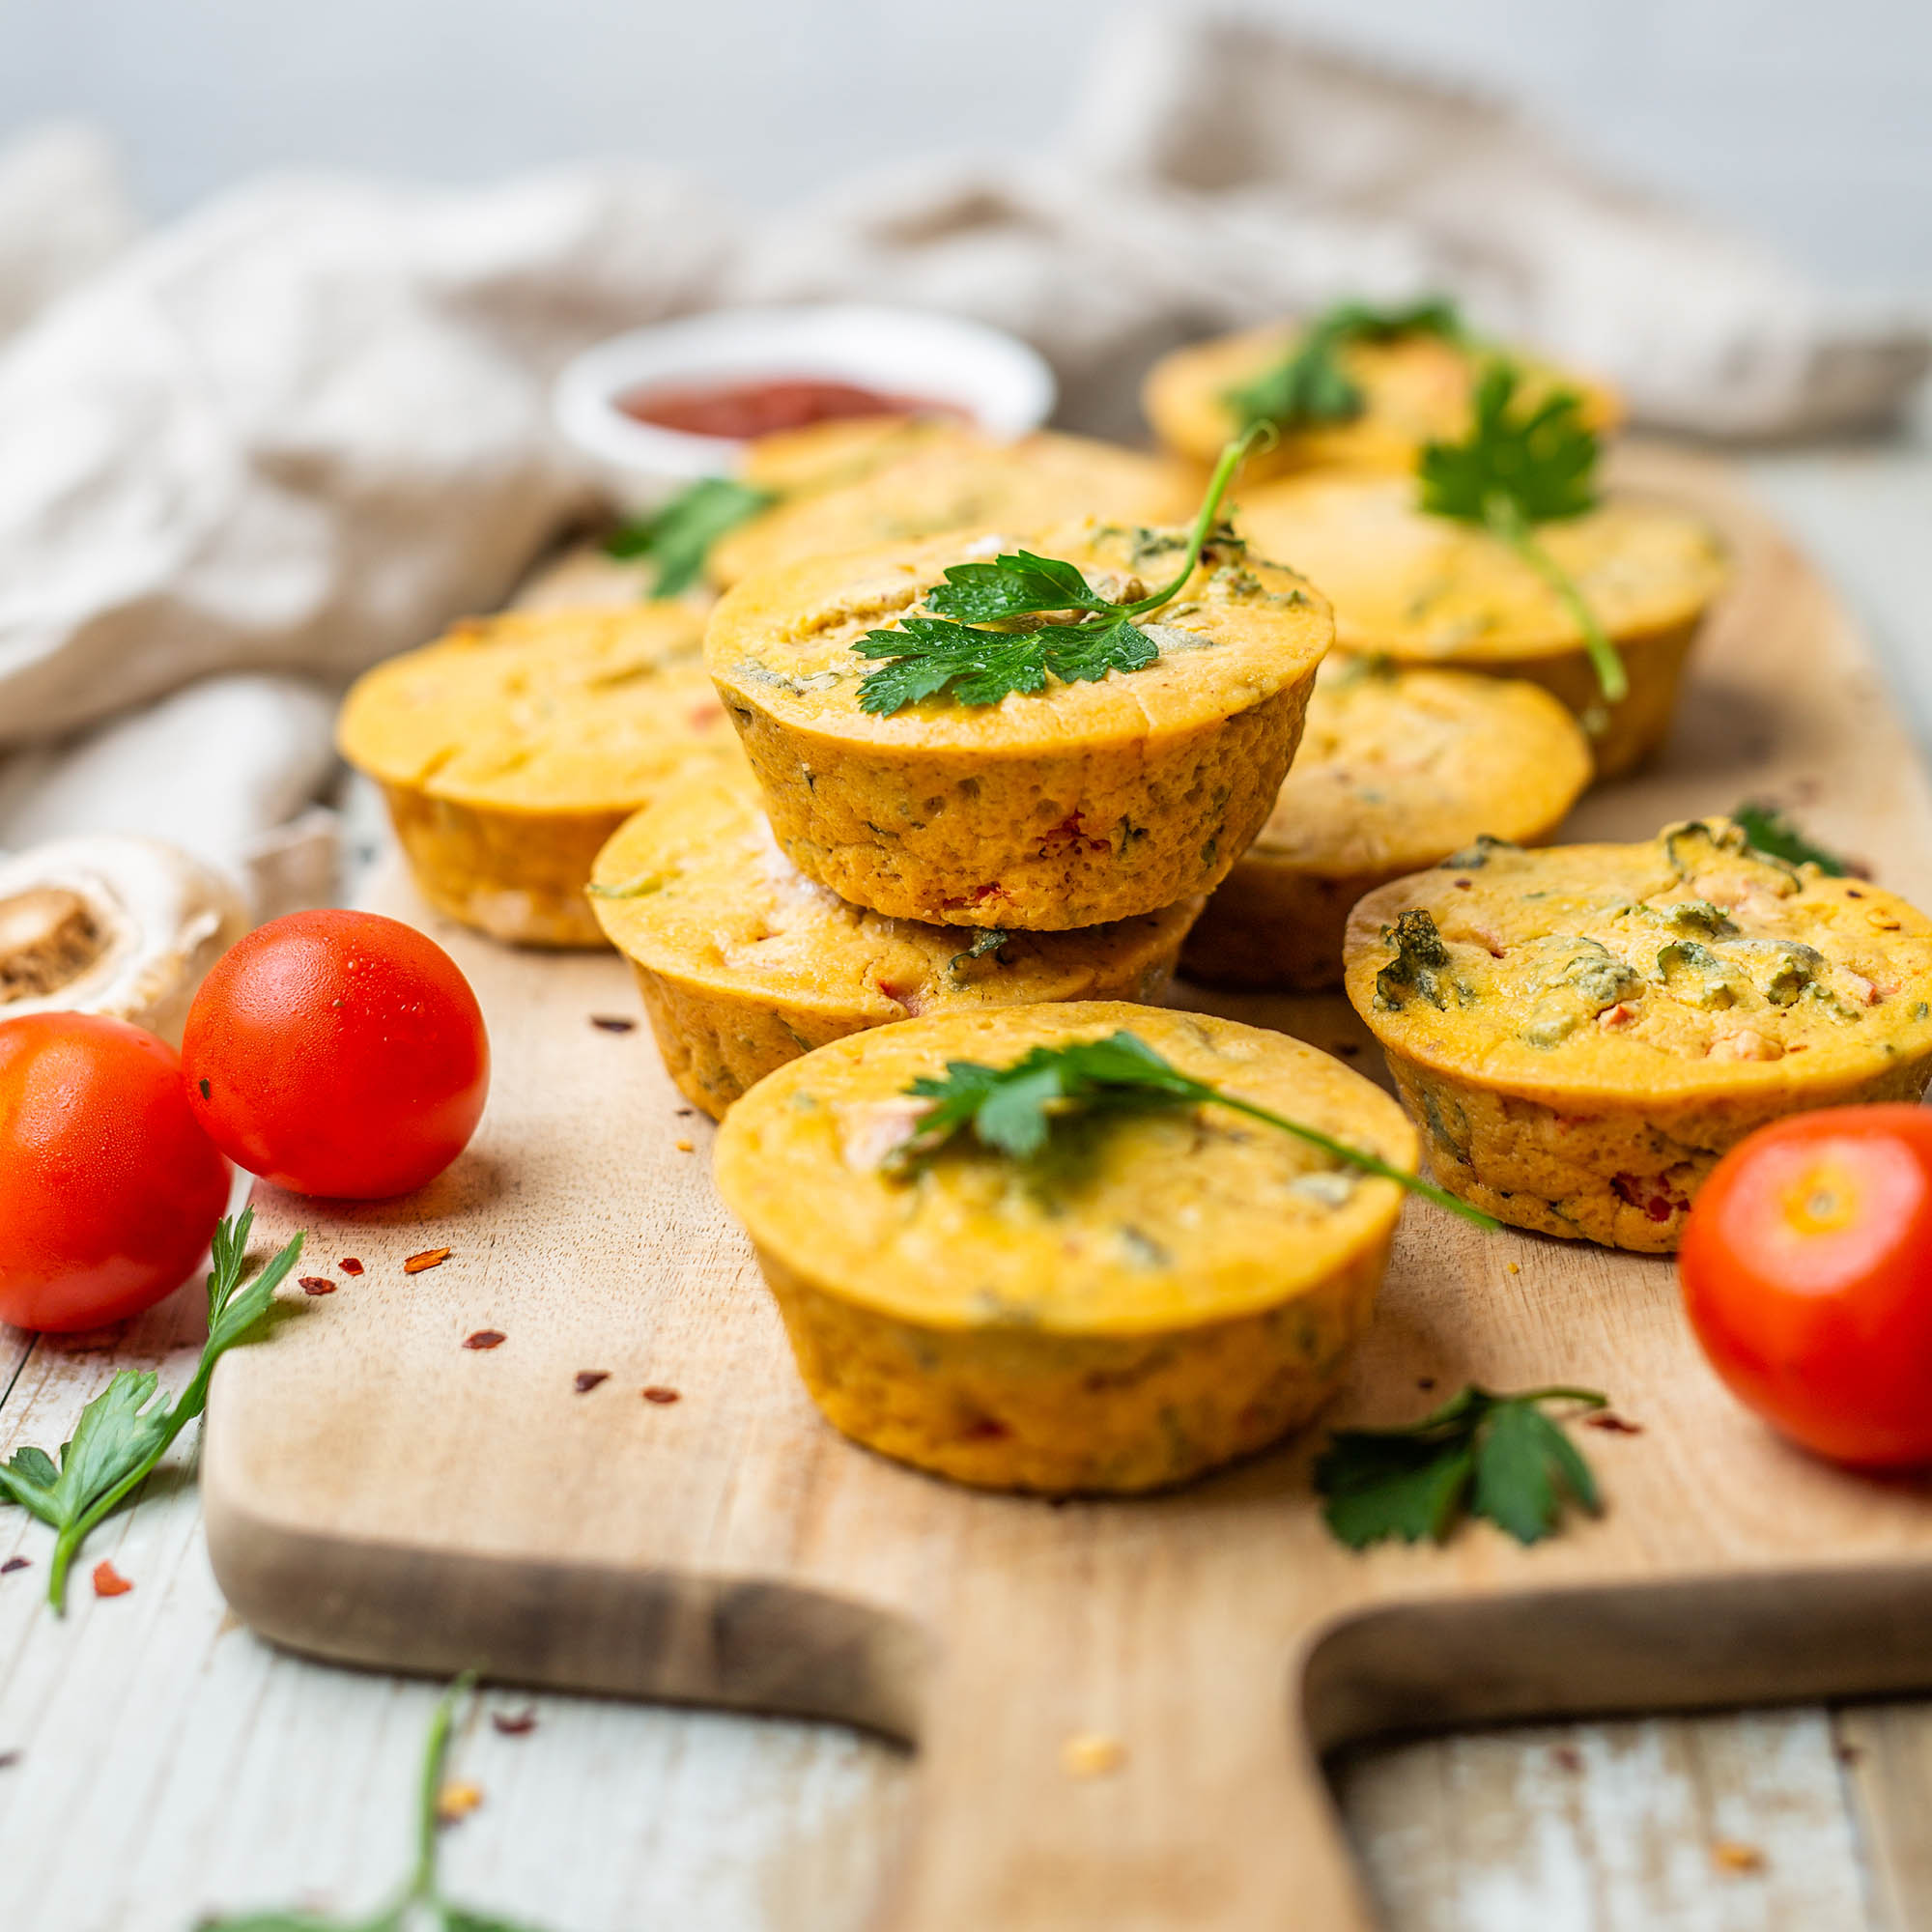 Kale Mushroom and Capsicum Vegan Egg Free Mini Frittatas made with Chickpea Flour